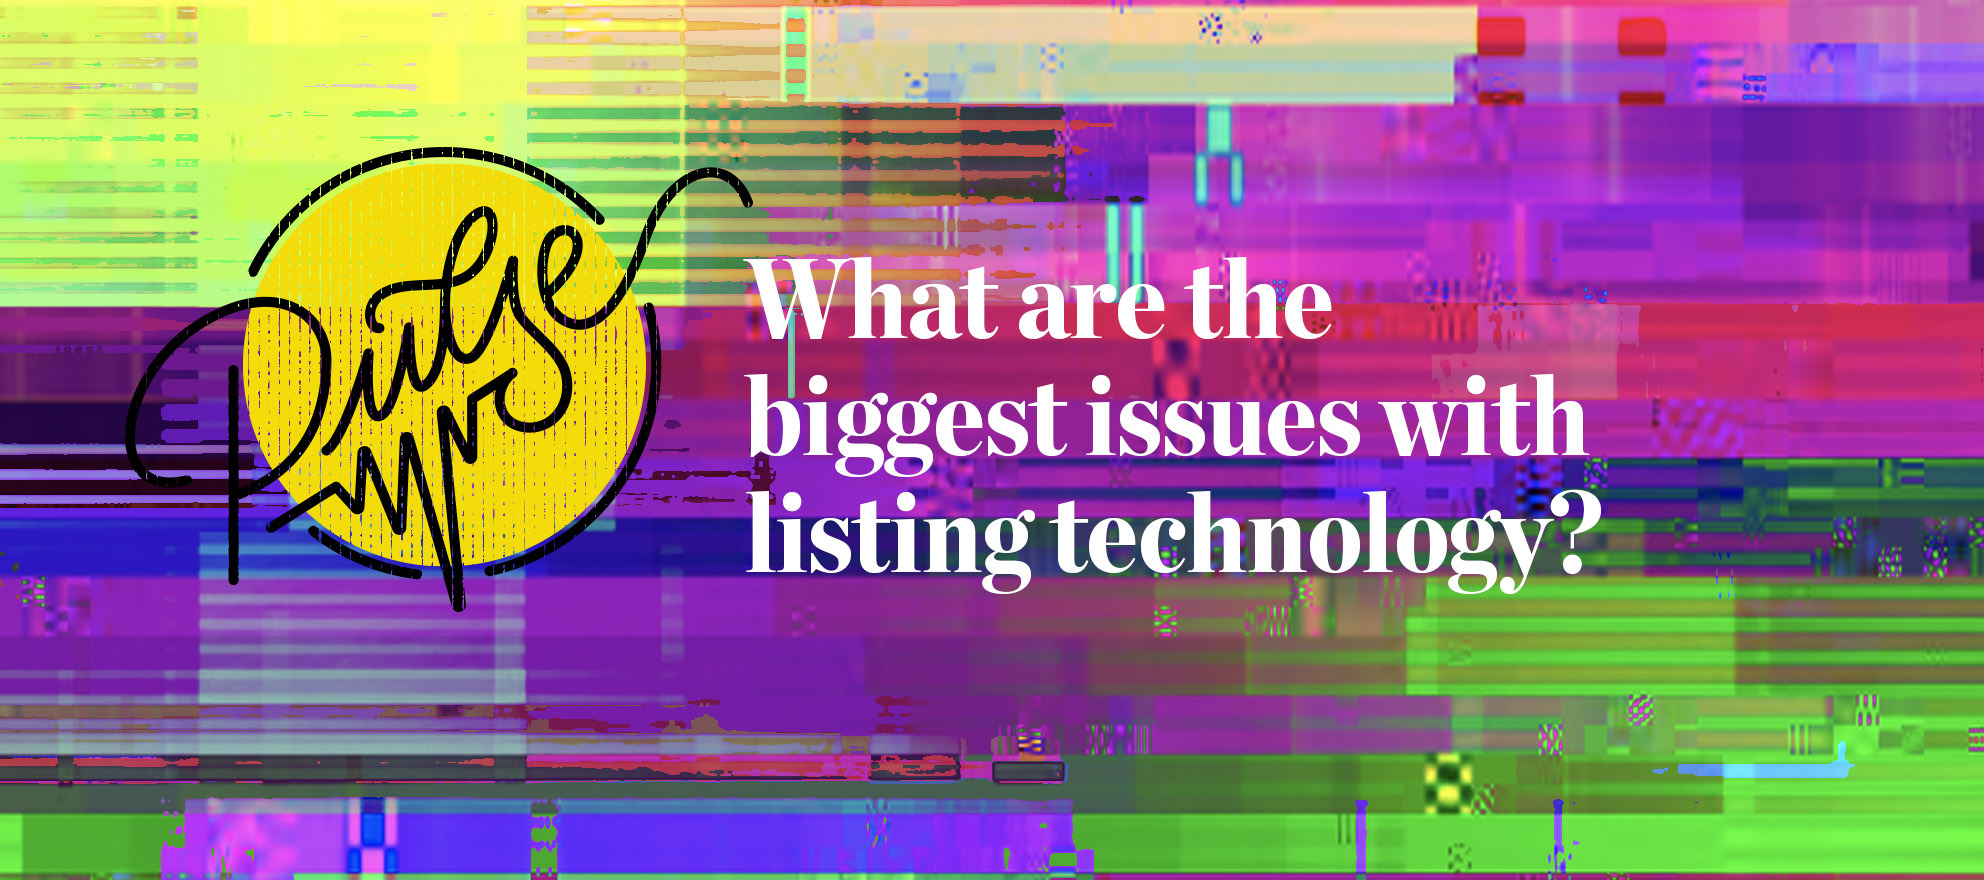 Pulse: What are the biggest issues with listing technology?